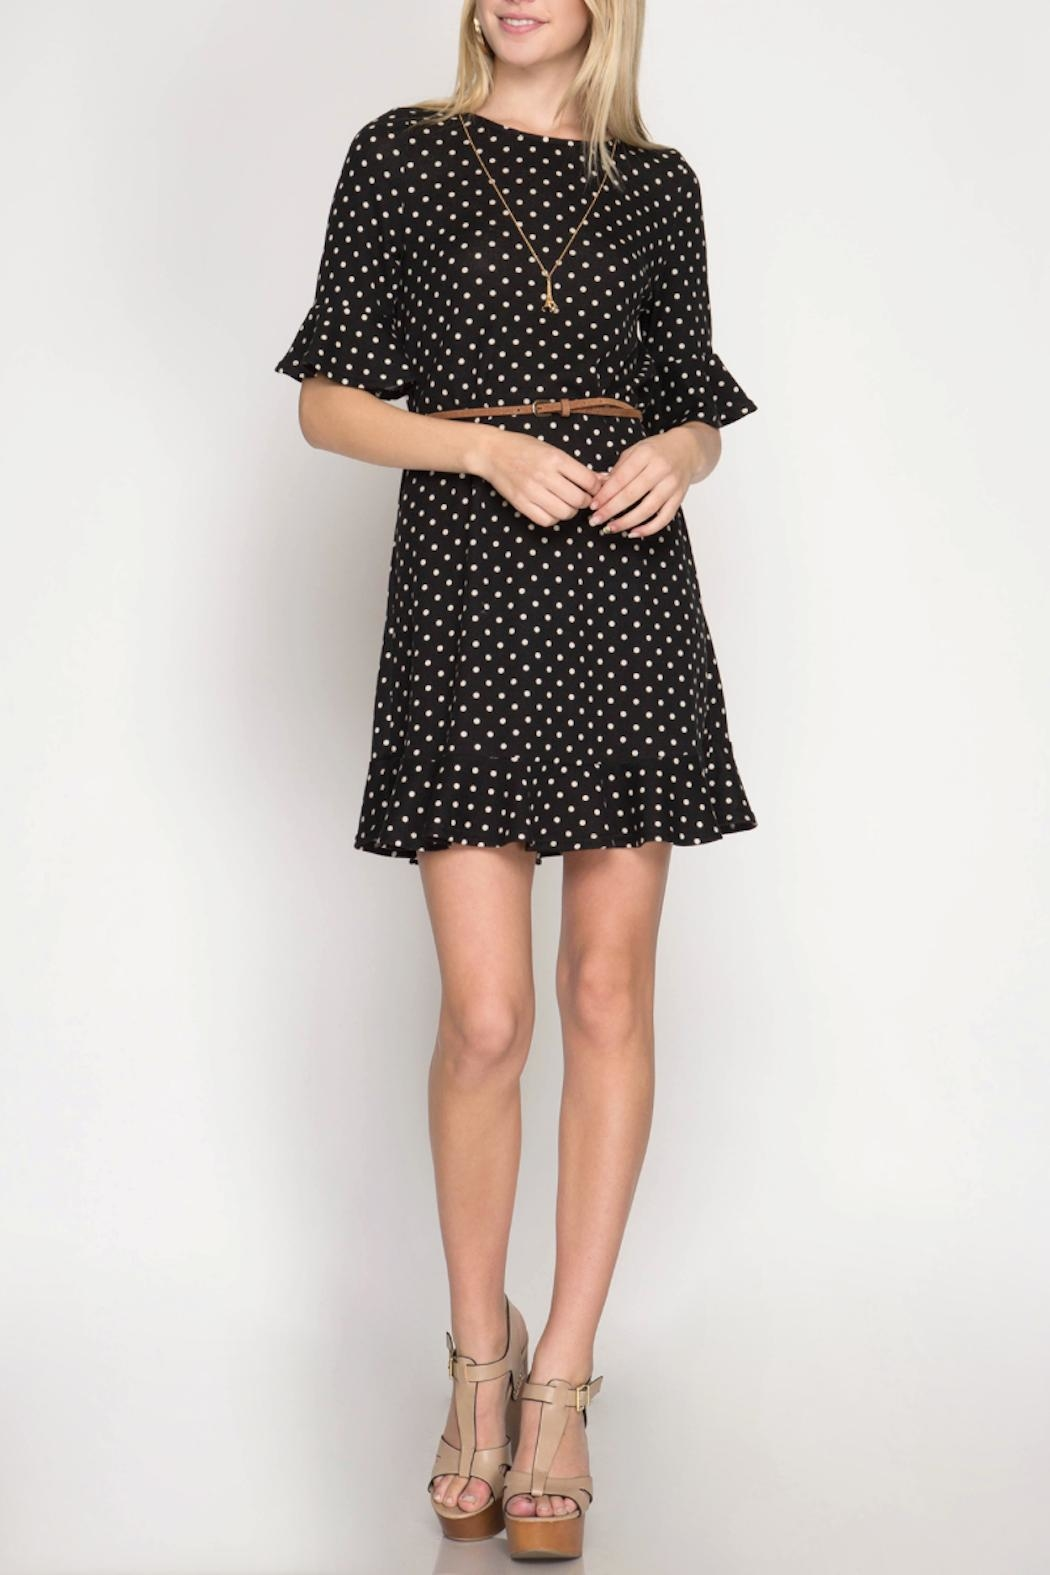 She + Sky Polka Dot Dress - Front Full Image